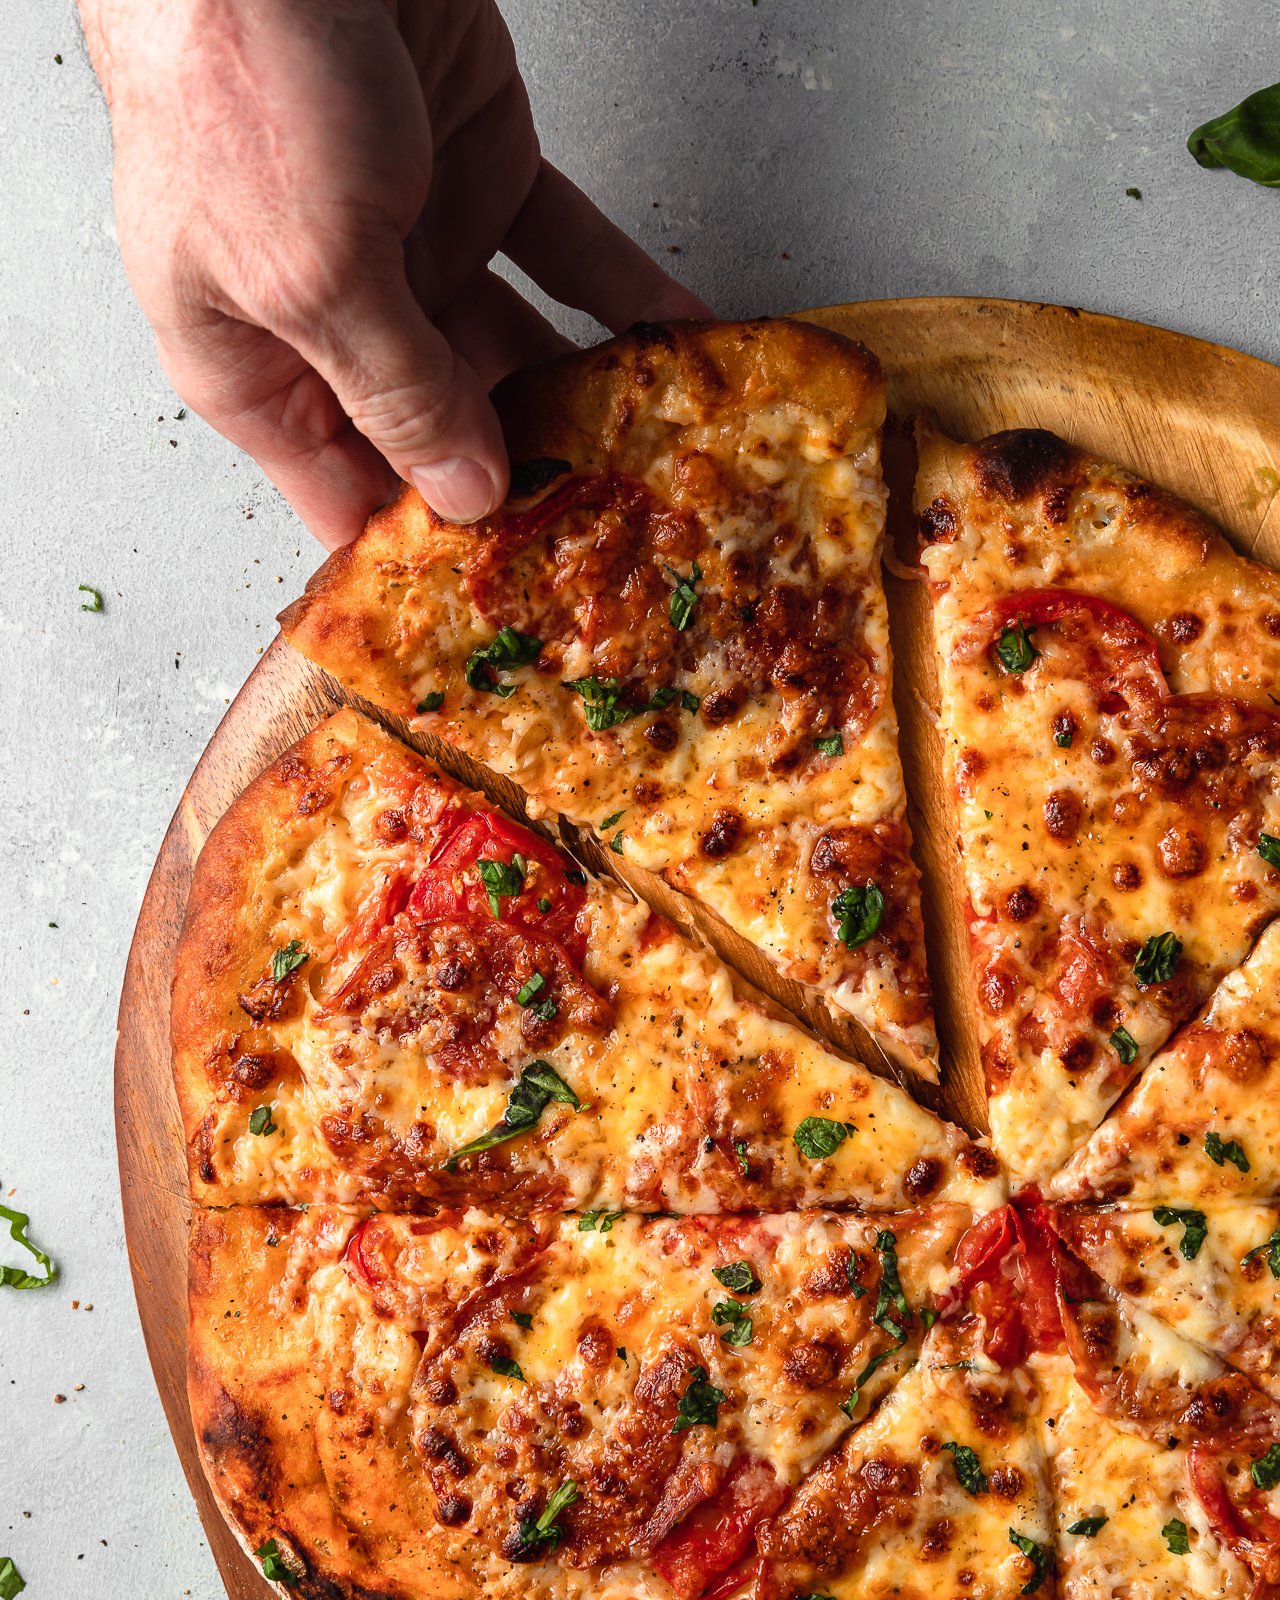 Cheese Pizza with Calabrese, Basil and Tomatoes